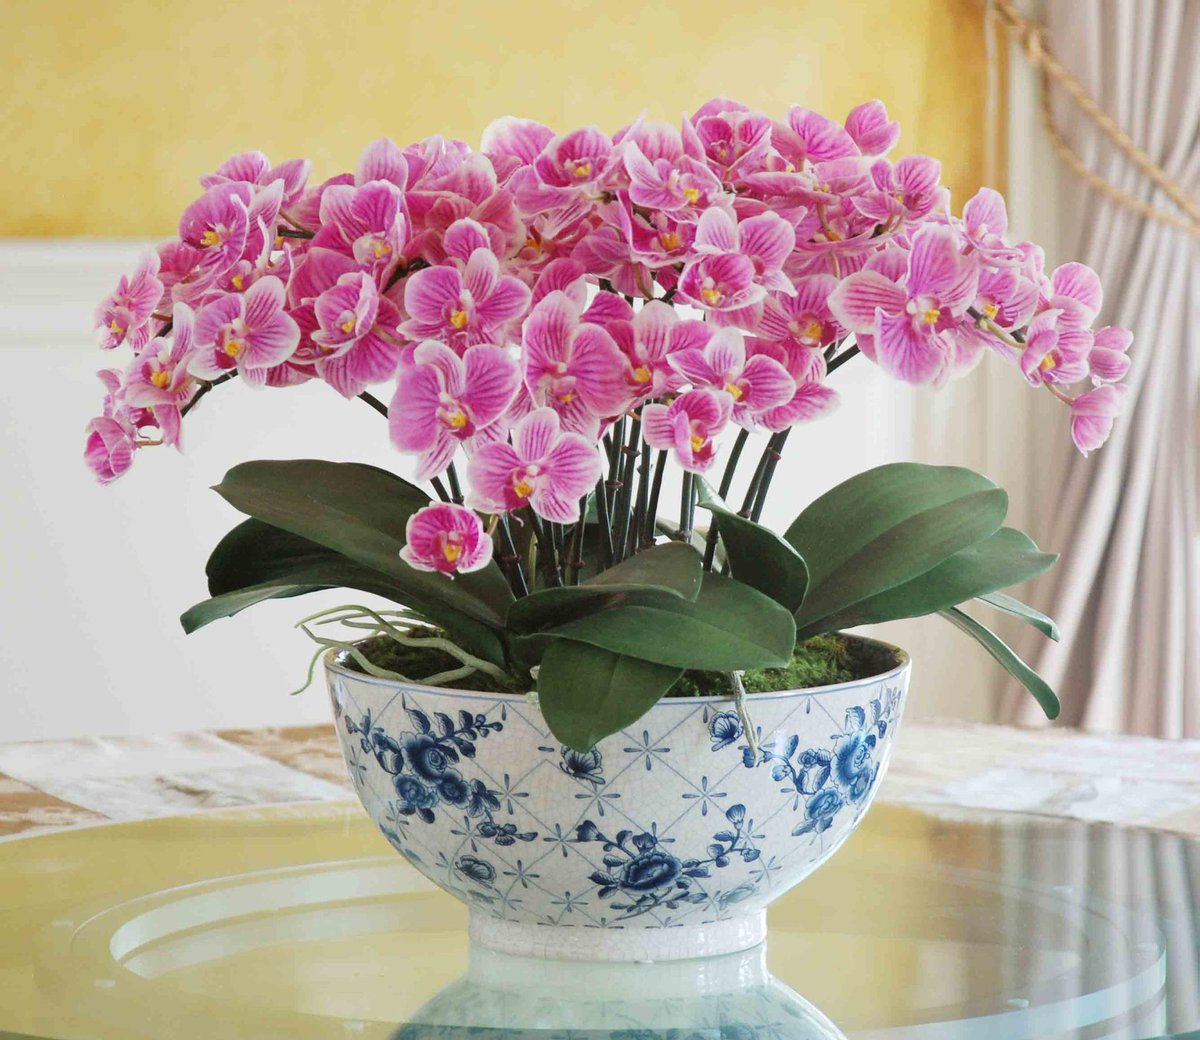 RESTOCK: Eclectic Phalaenopsis Orchid Centerpiece, as seen in @VERANDAmag. http://t.co/Ik572nJJVe